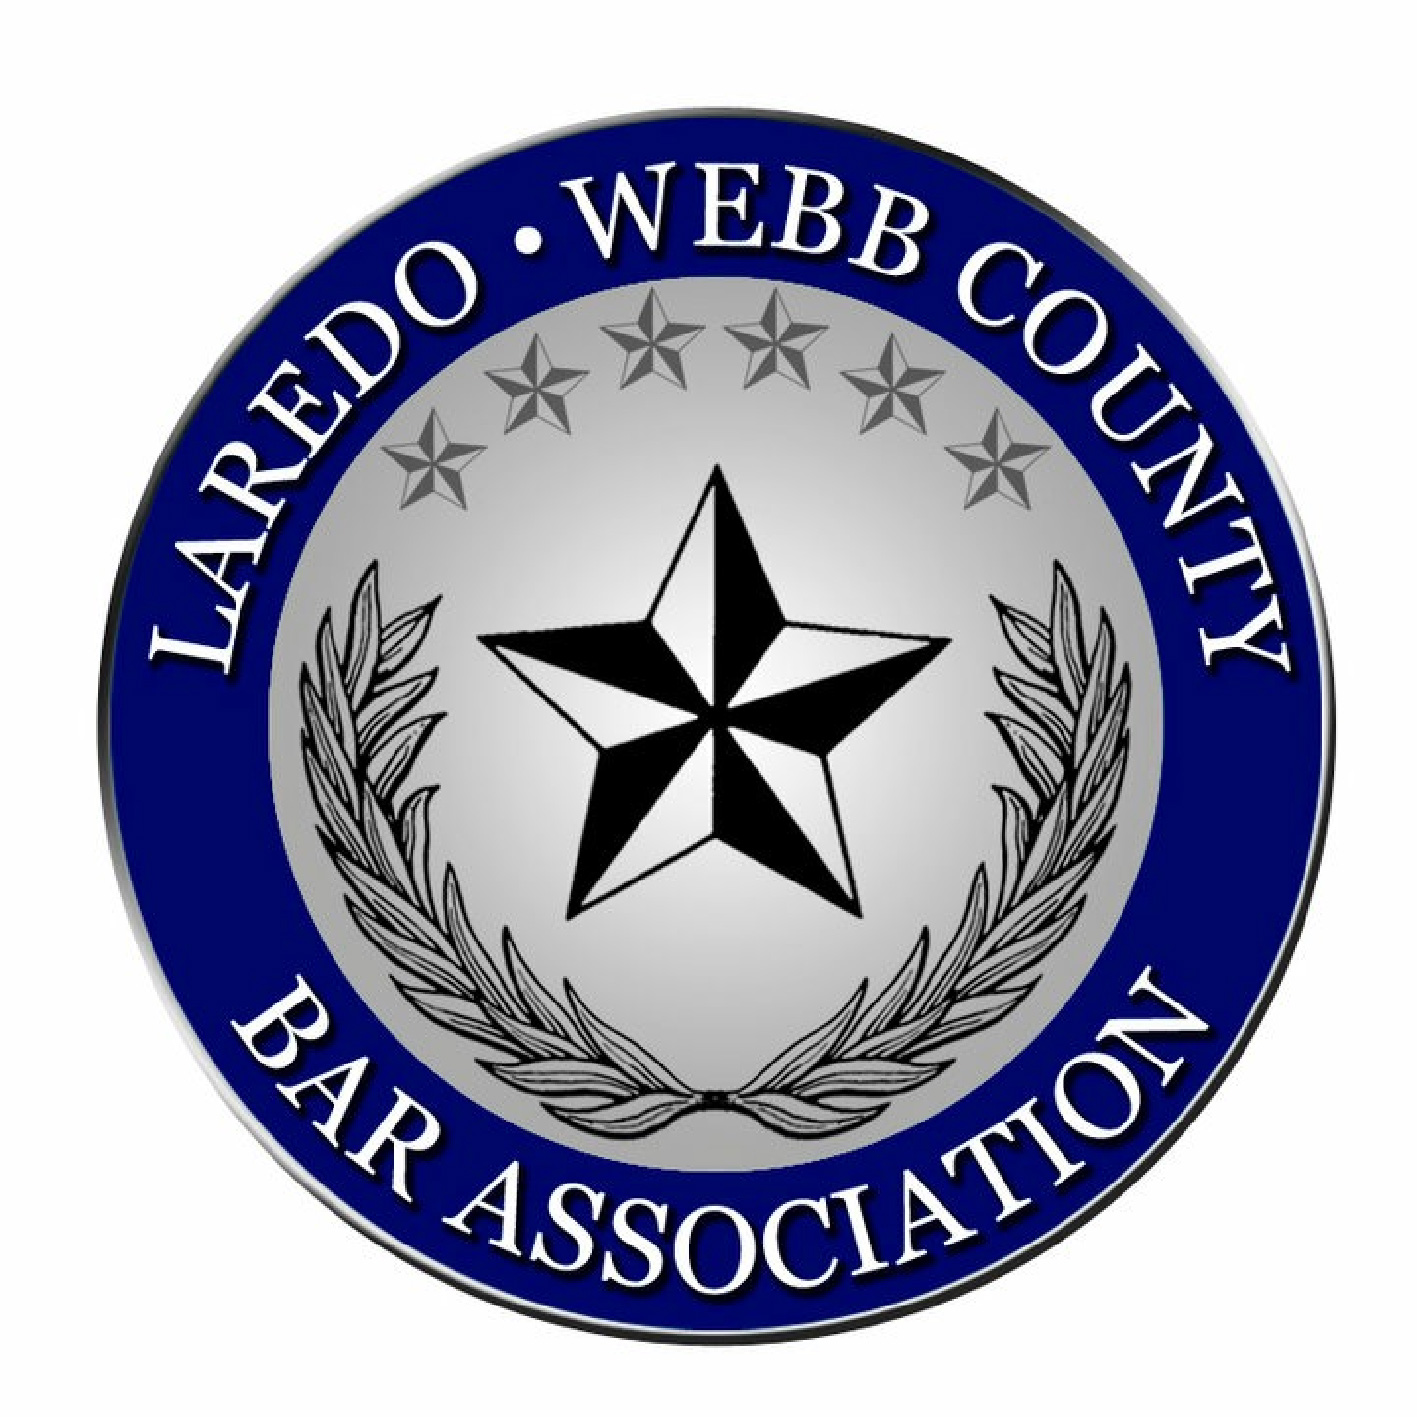 Member of the Webb County Bar Association